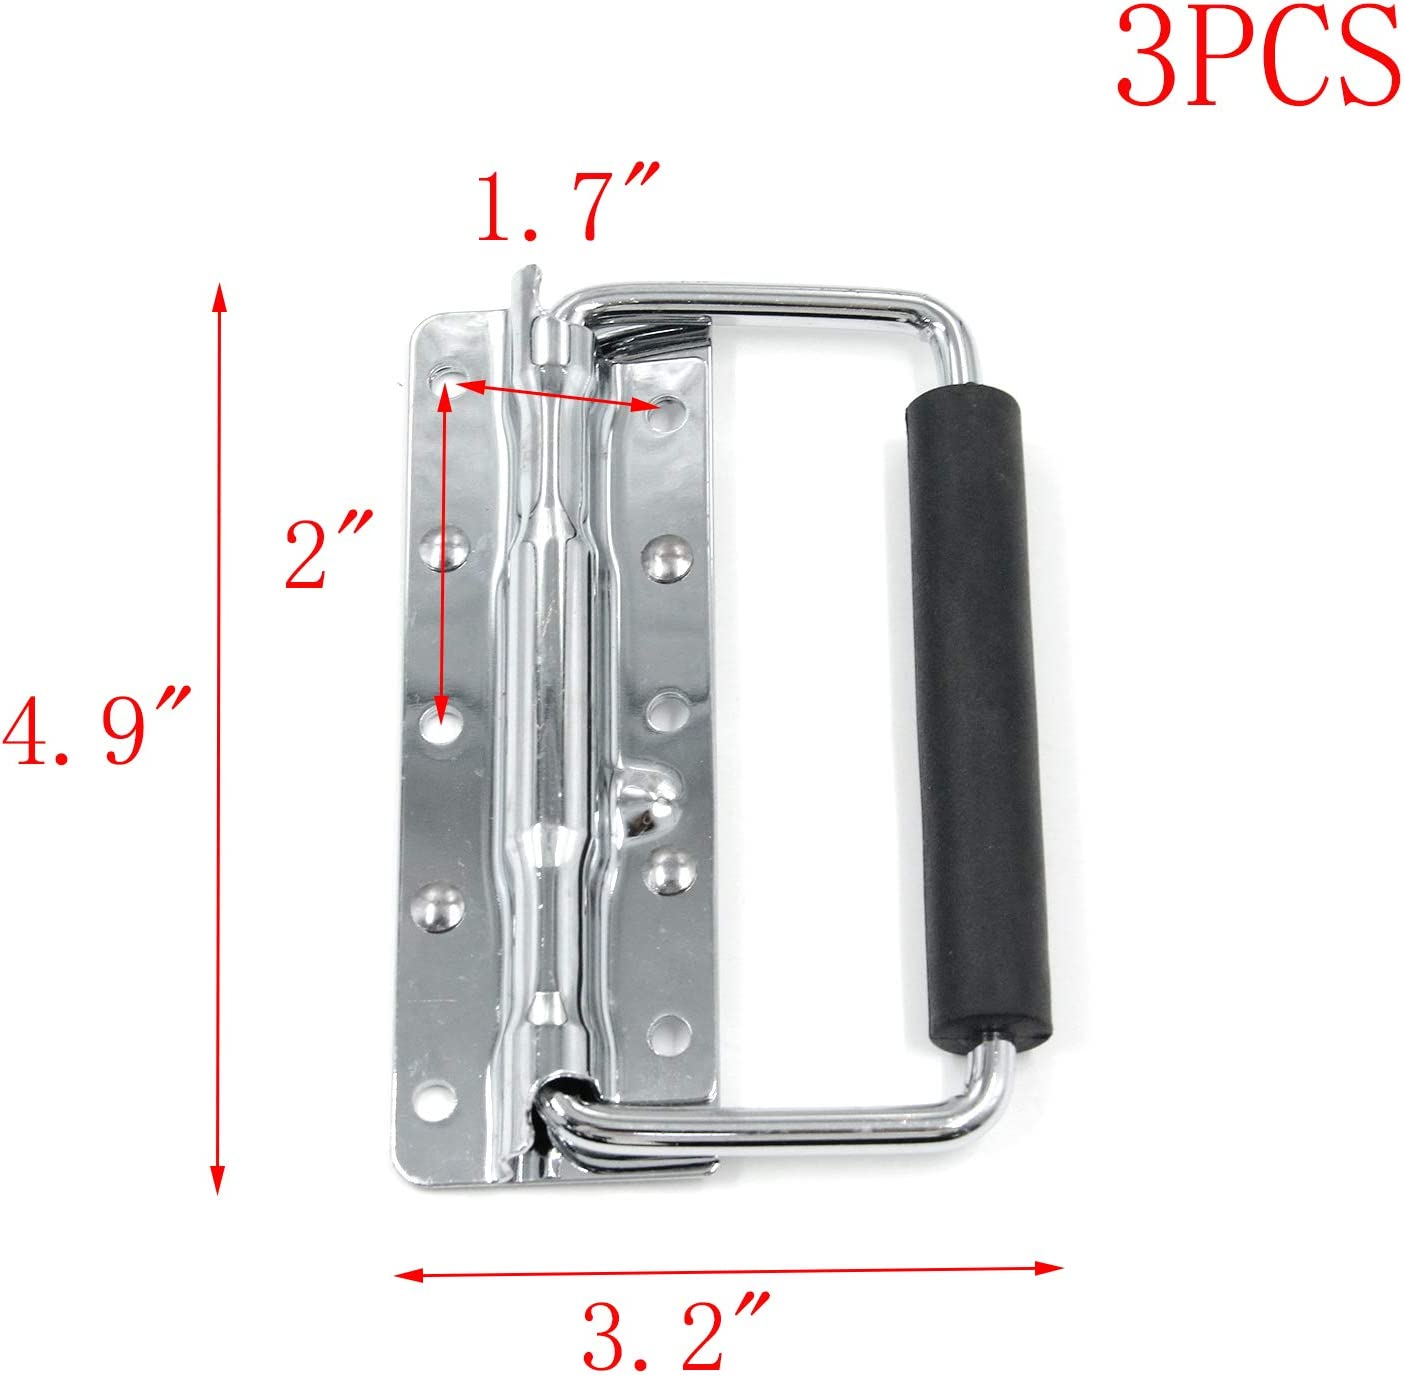 MTMTOOL 4.9 x 3.2 Iron Spring Loaded Surface Mount Case Handle with Rubber Grip Pack of 3